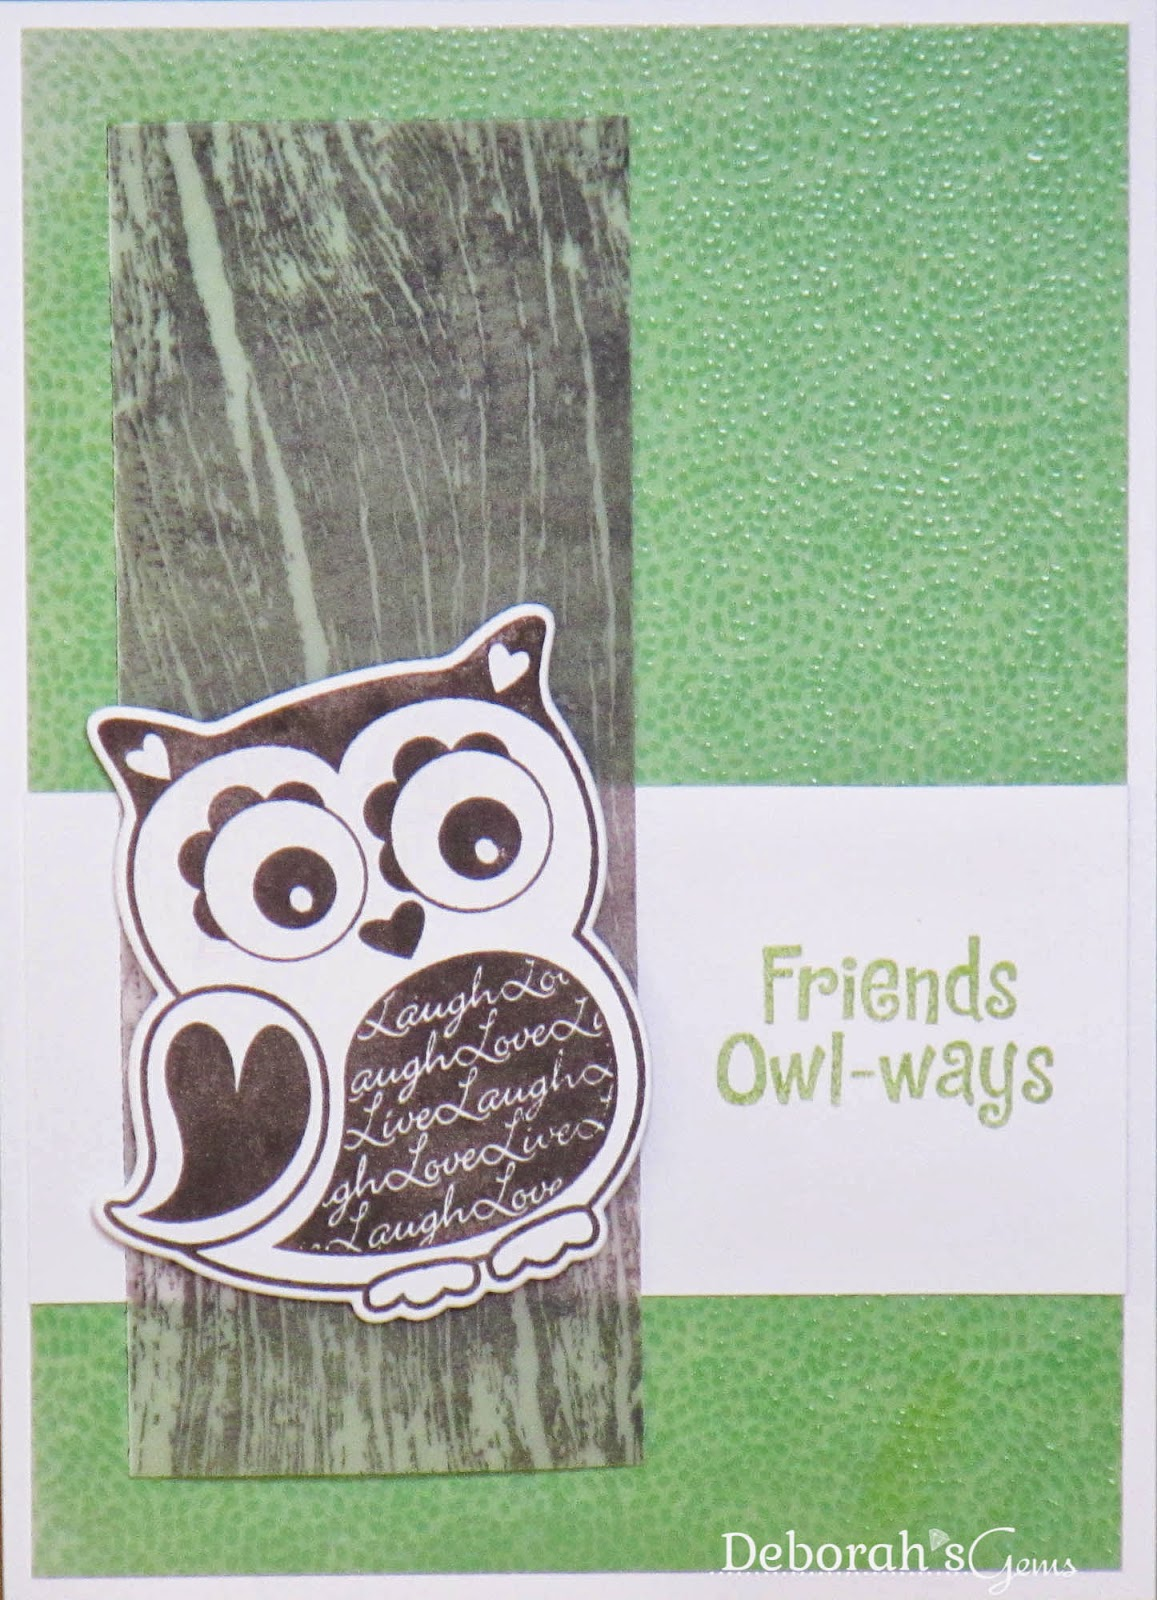 Friends Owl-ways - photo by Deborah Frings - Deborah's Gems